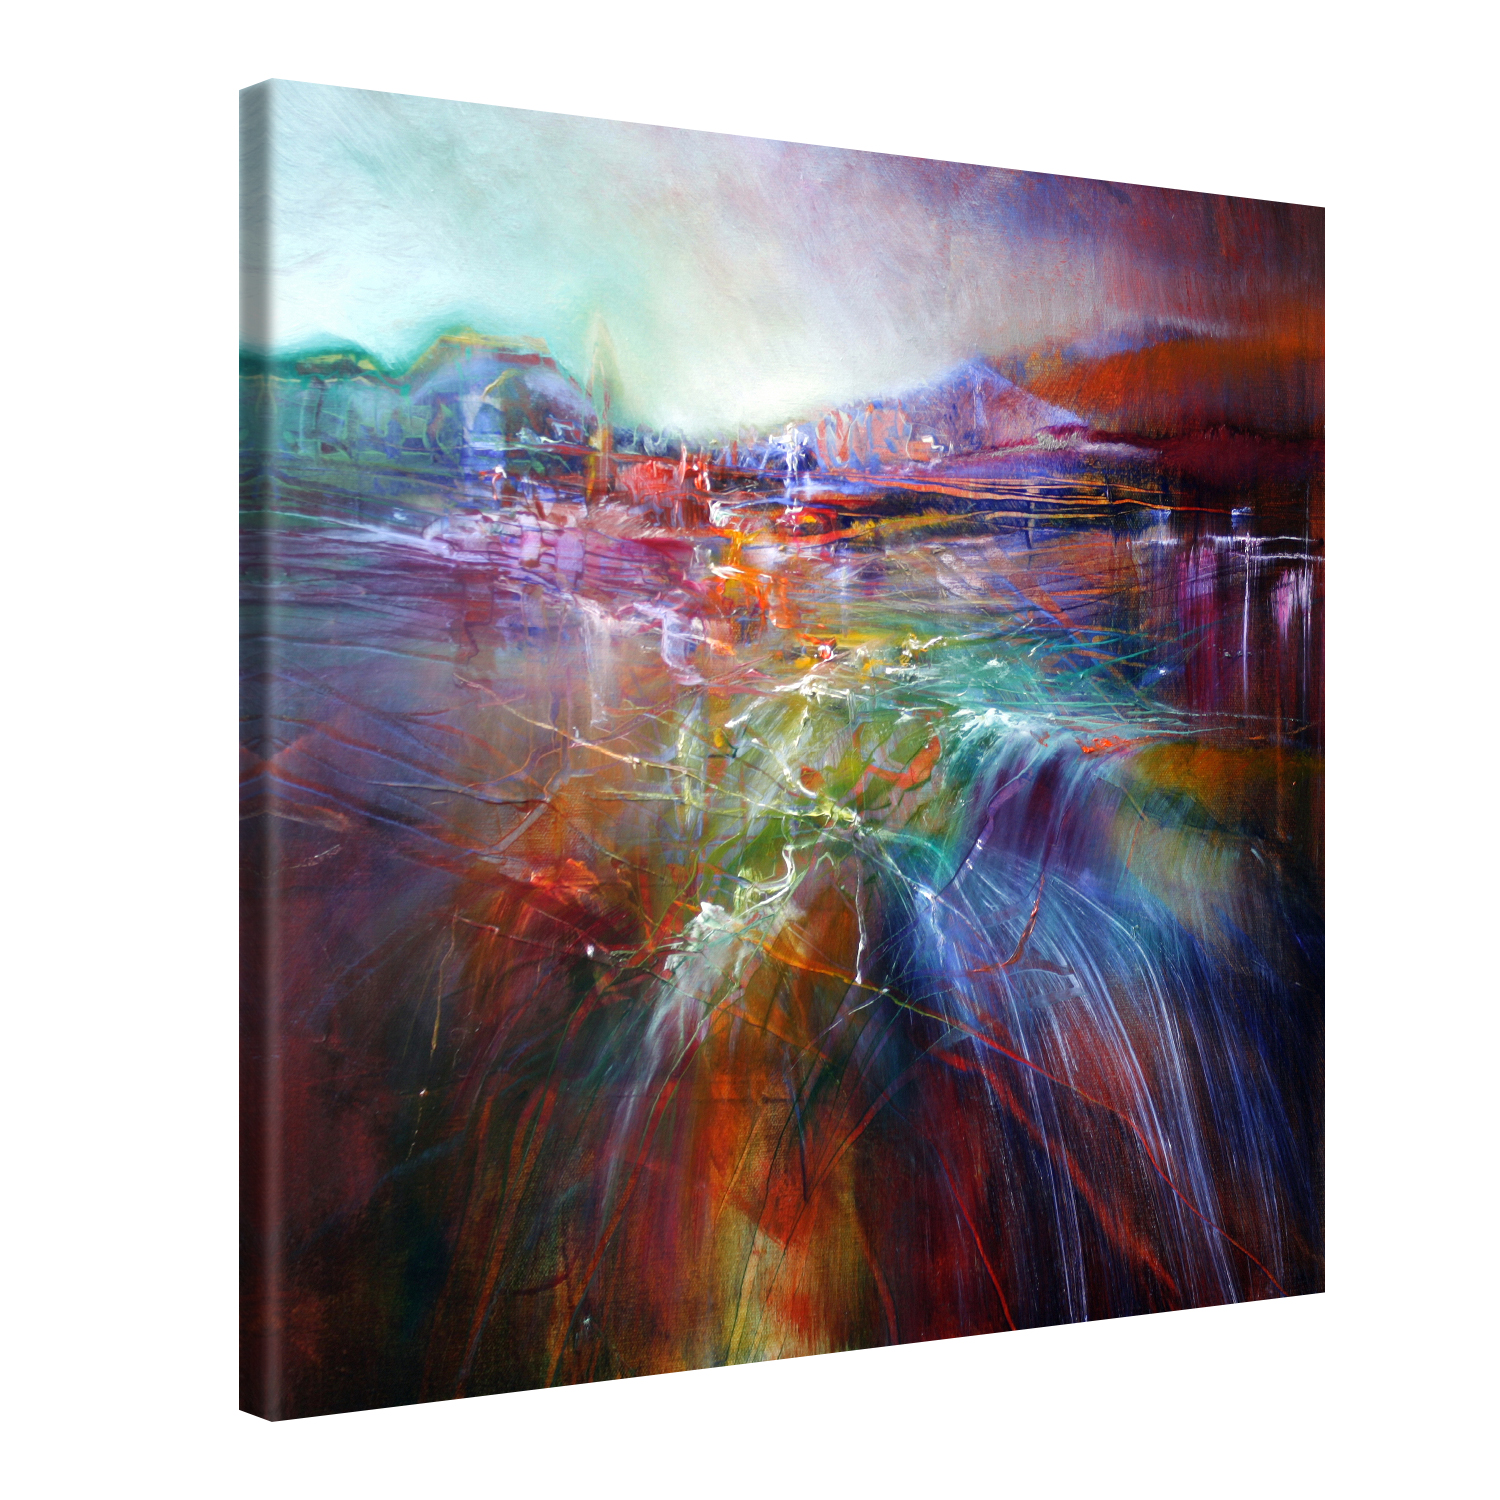 Evening Glory - 40x40 cm - Annette Schmucker #e13175